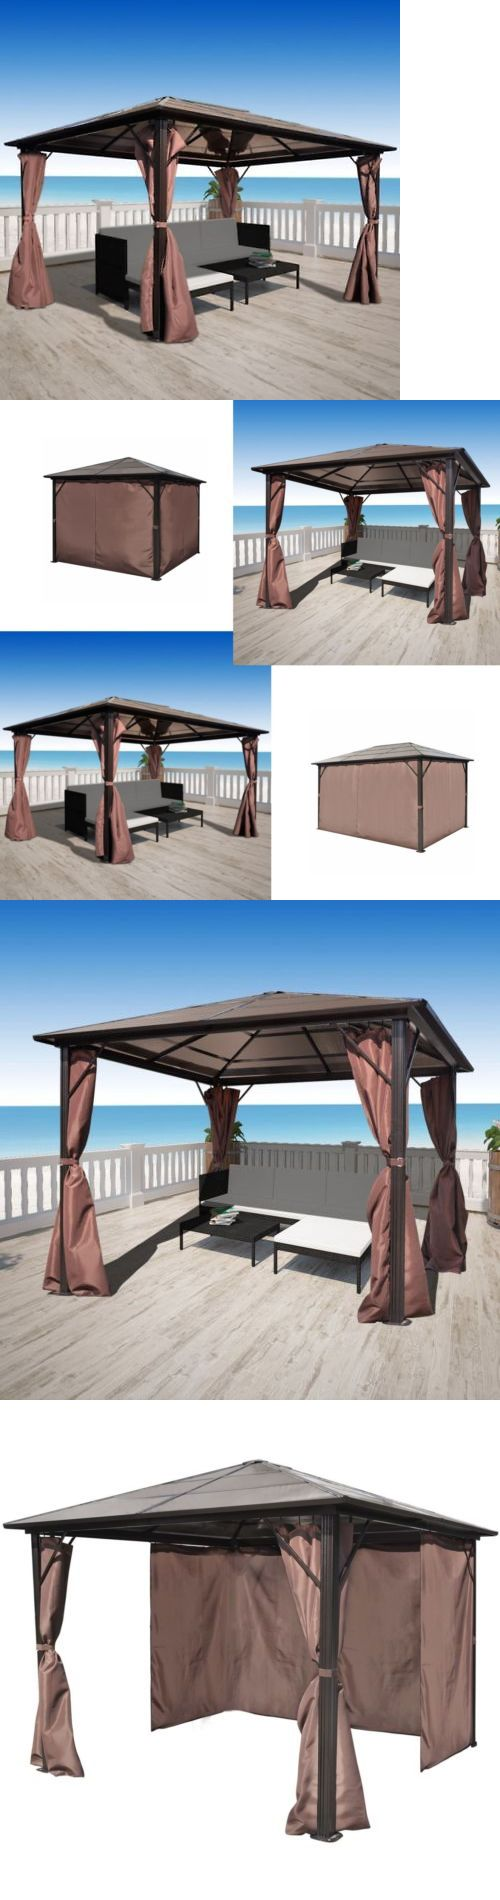 Gazebos 180995 10 X 13 10 X 10 Hardtop Metal Steel Roof Outdoor Patio Gazebo W Aluminum Poles Buy It Now Only 619 99 On Patio Gazebo Gazebo Gazebo Tent